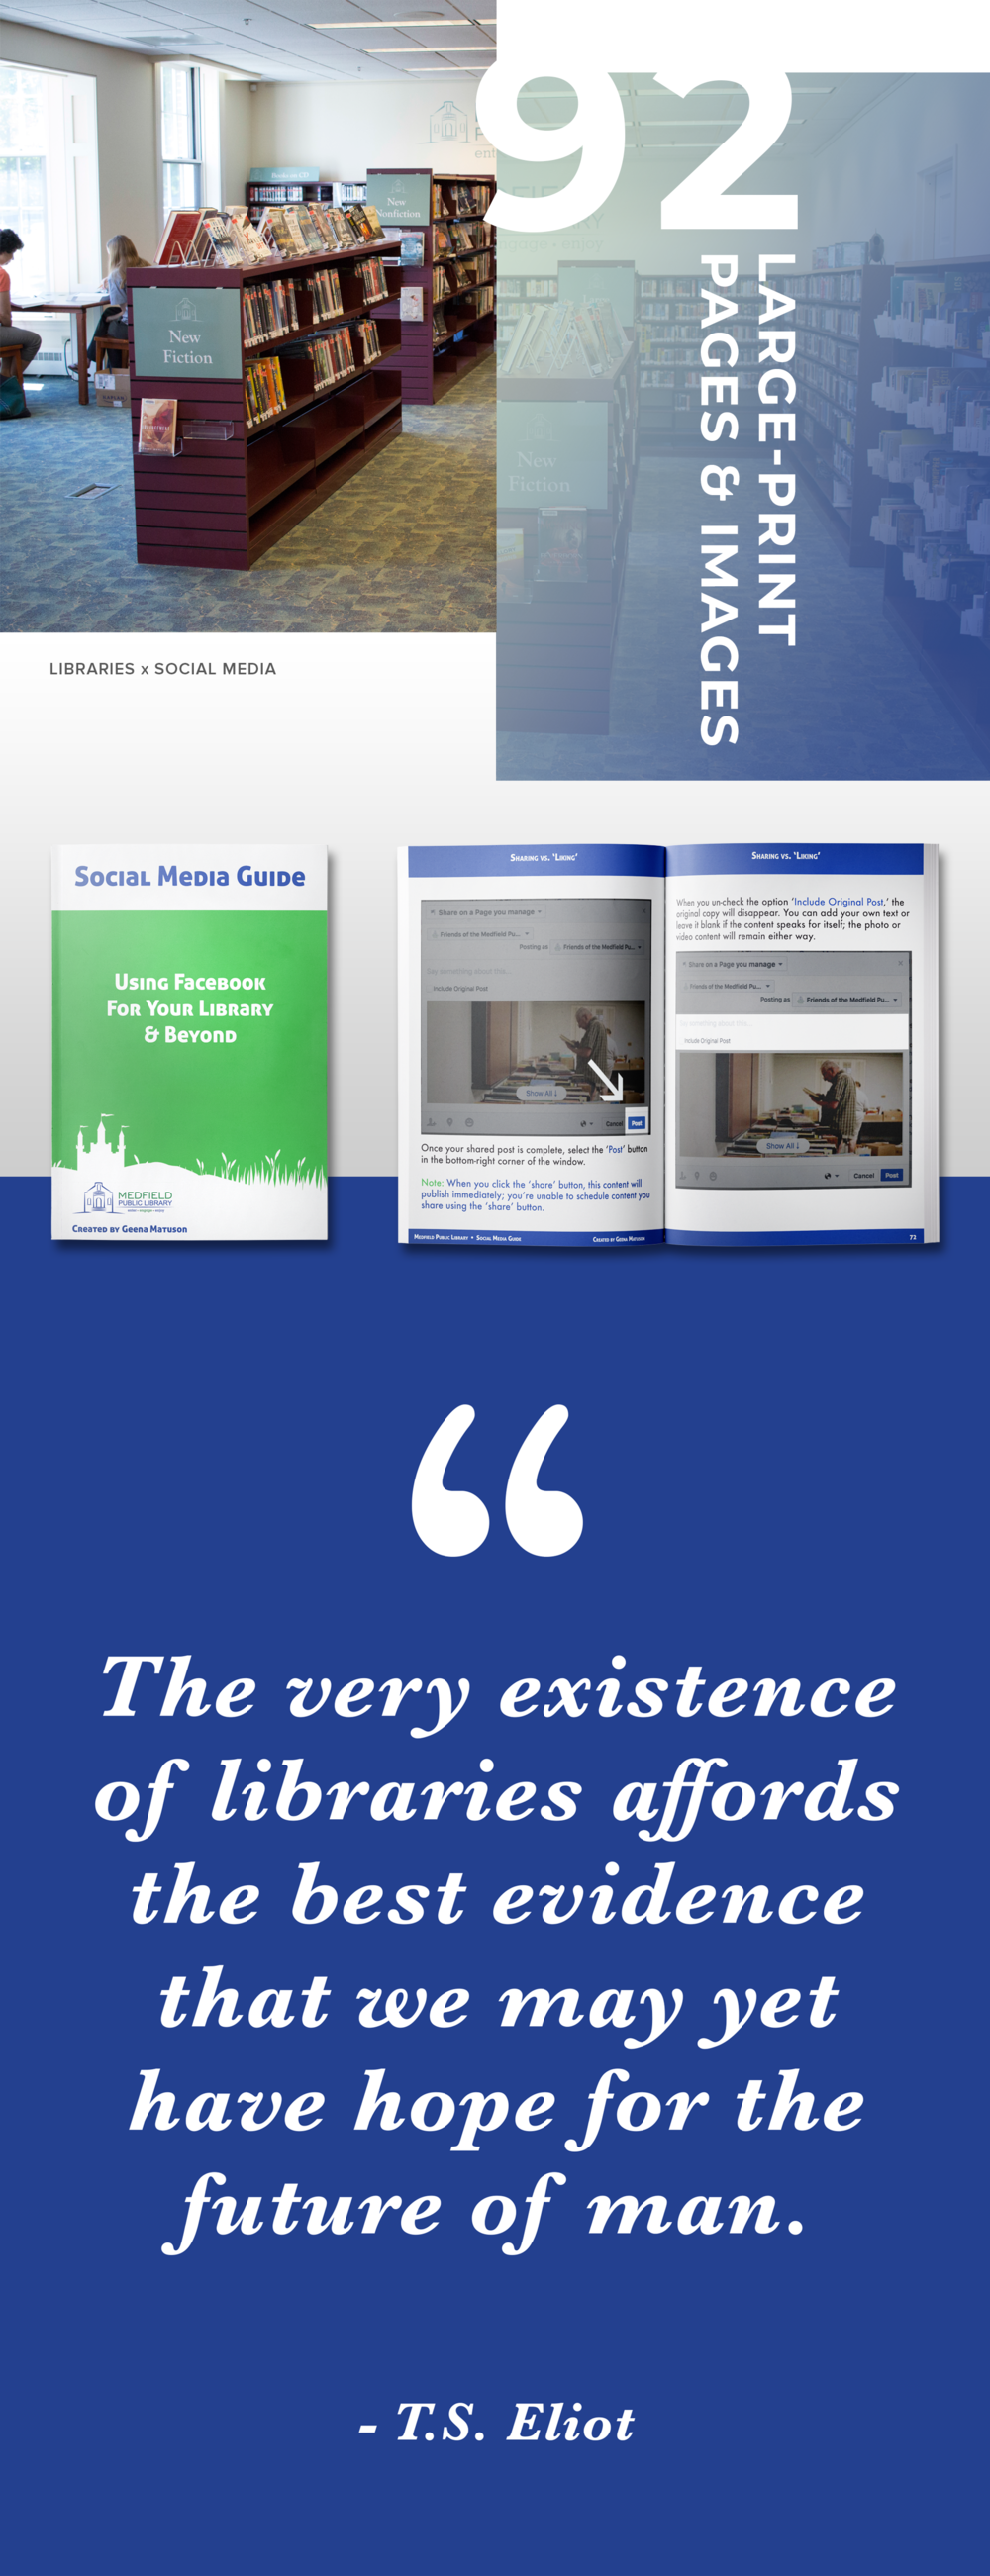 This 92-page social media guide by Geena Matuson (@geenamatuson) will talk you and your organization through the setup of a public Facebook page, teach you the basics of Facebook usability, and show you best practices. See more @ https://thegirlmirage.com.